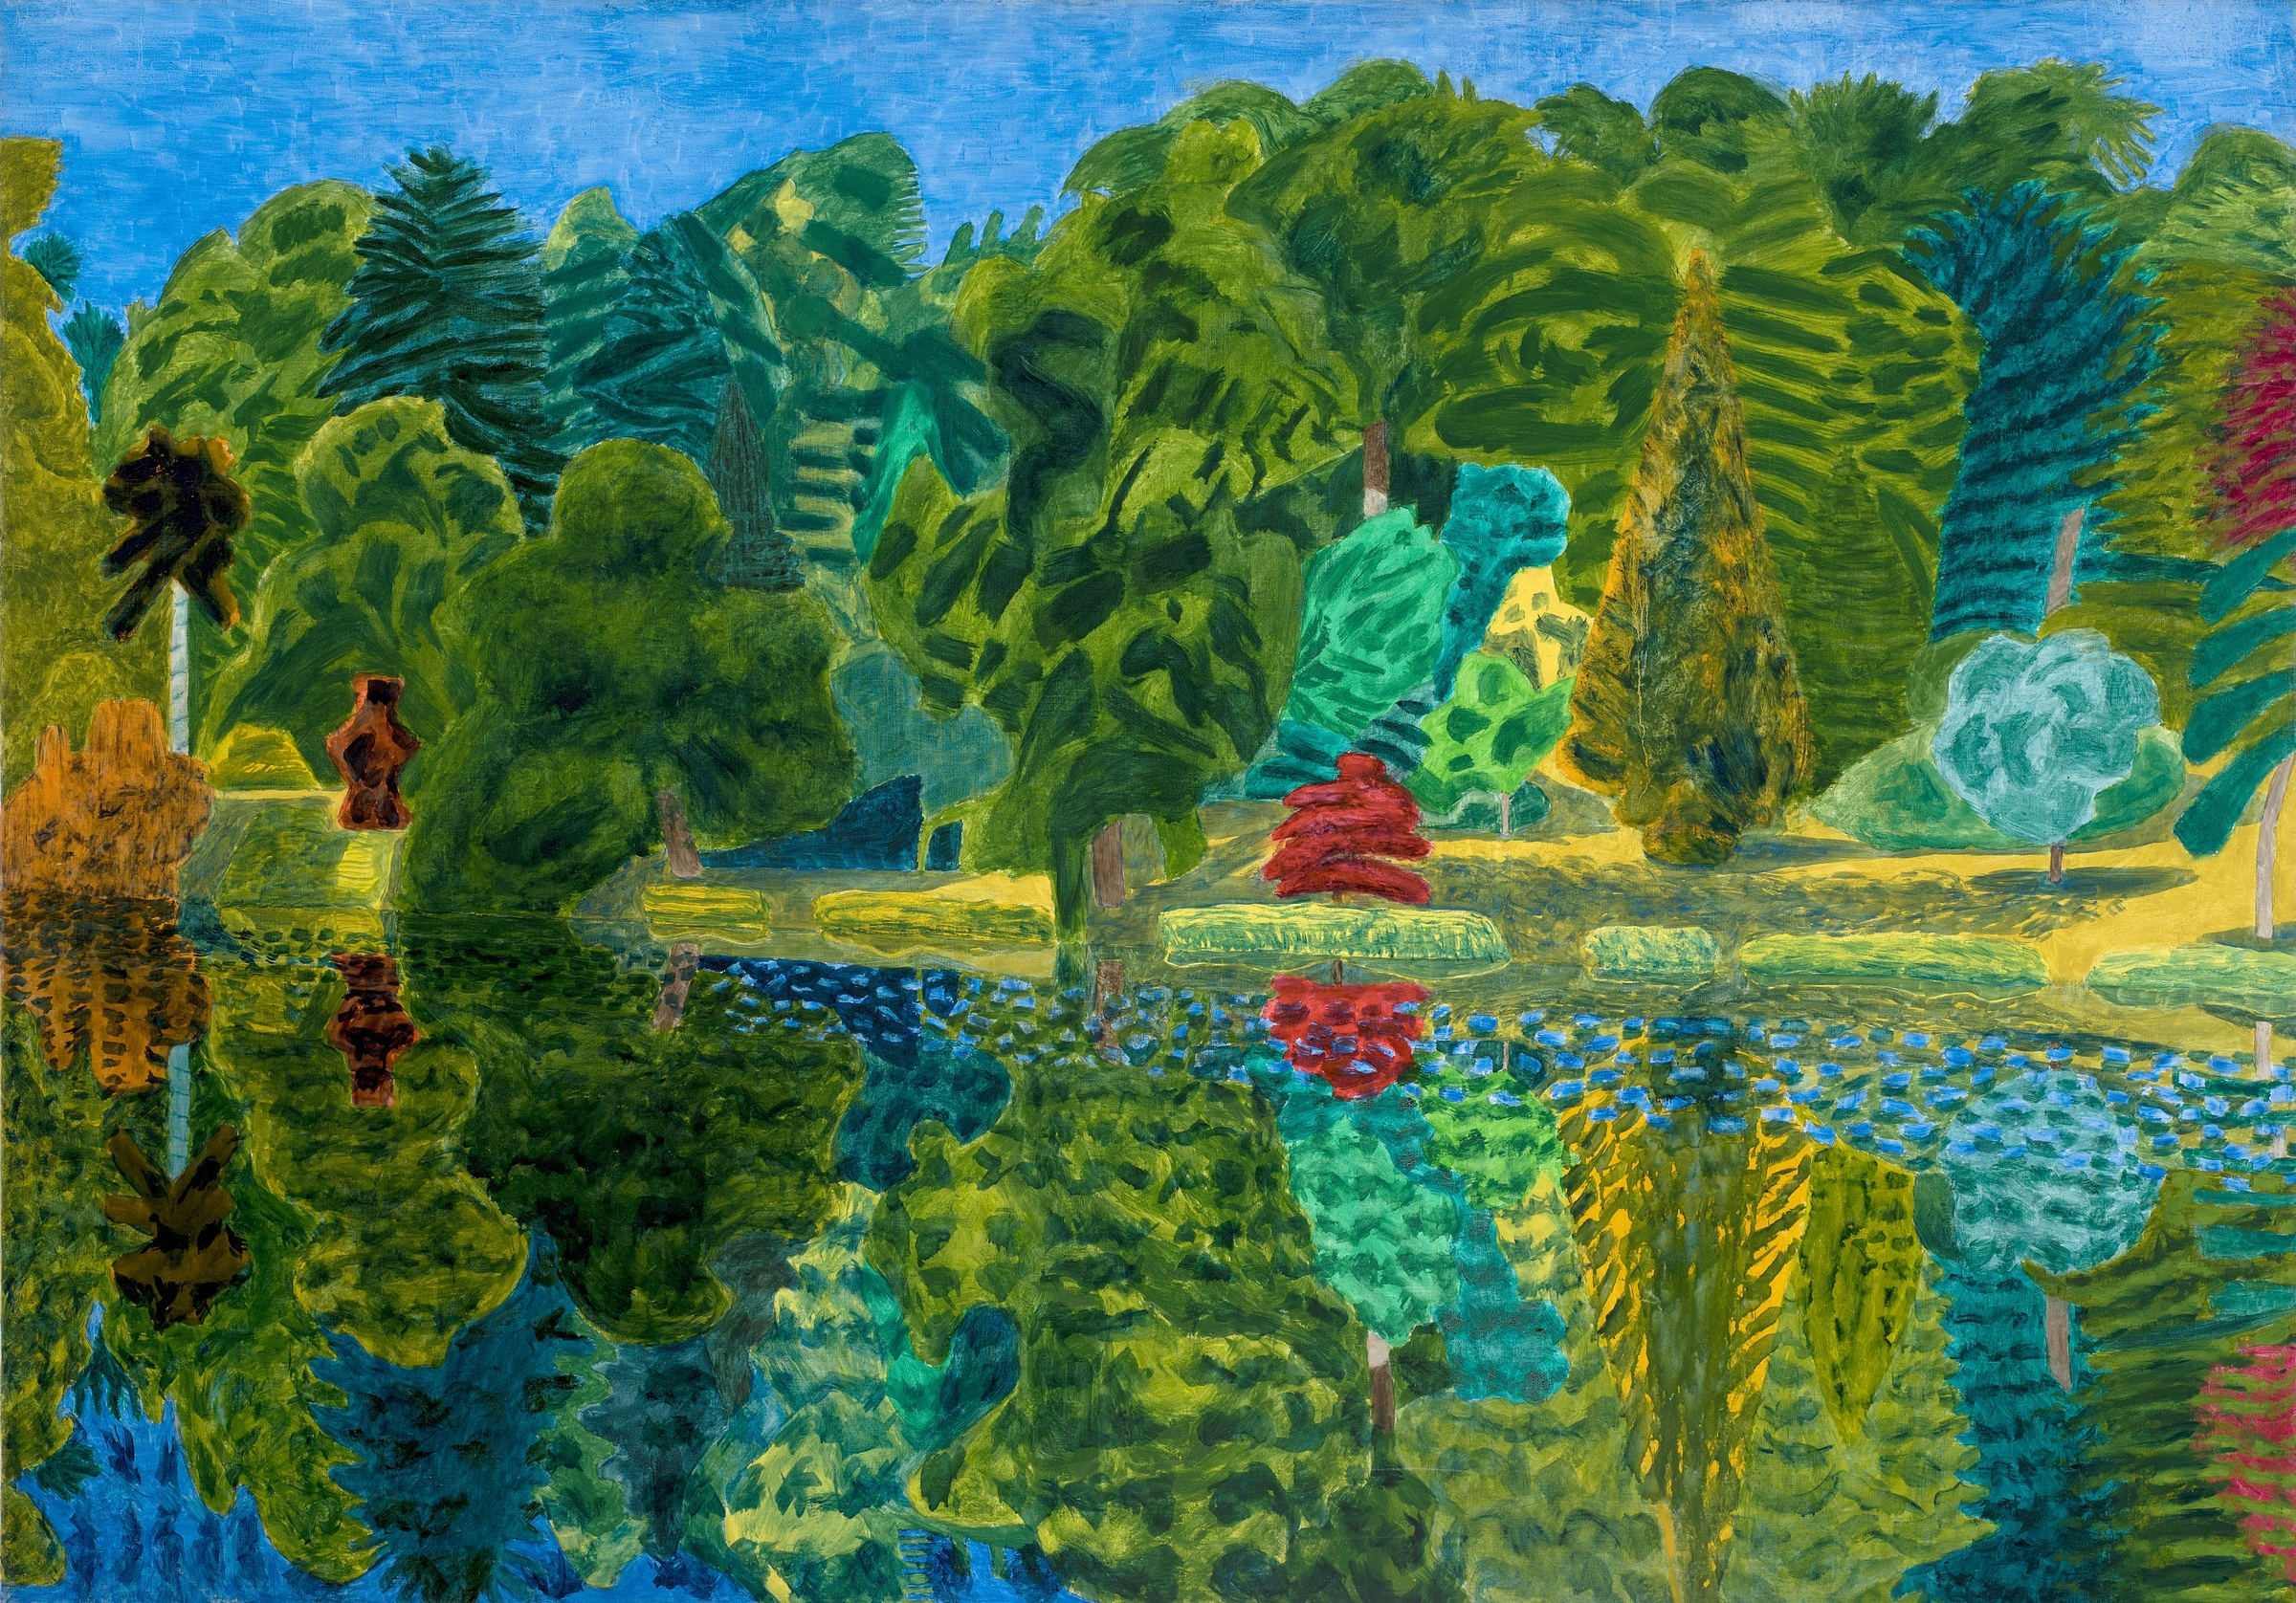 <span class=&#34;link fancybox-details-link&#34;><a href=&#34;/exhibitions/12/works/image285/&#34;>View Detail Page</a></span><p><strong>Adrian Berg RA (1929-2011)</strong></p><p>Stourhead, 29th June</p><p>1993, oil on canvas, 132 x 188cm</p>